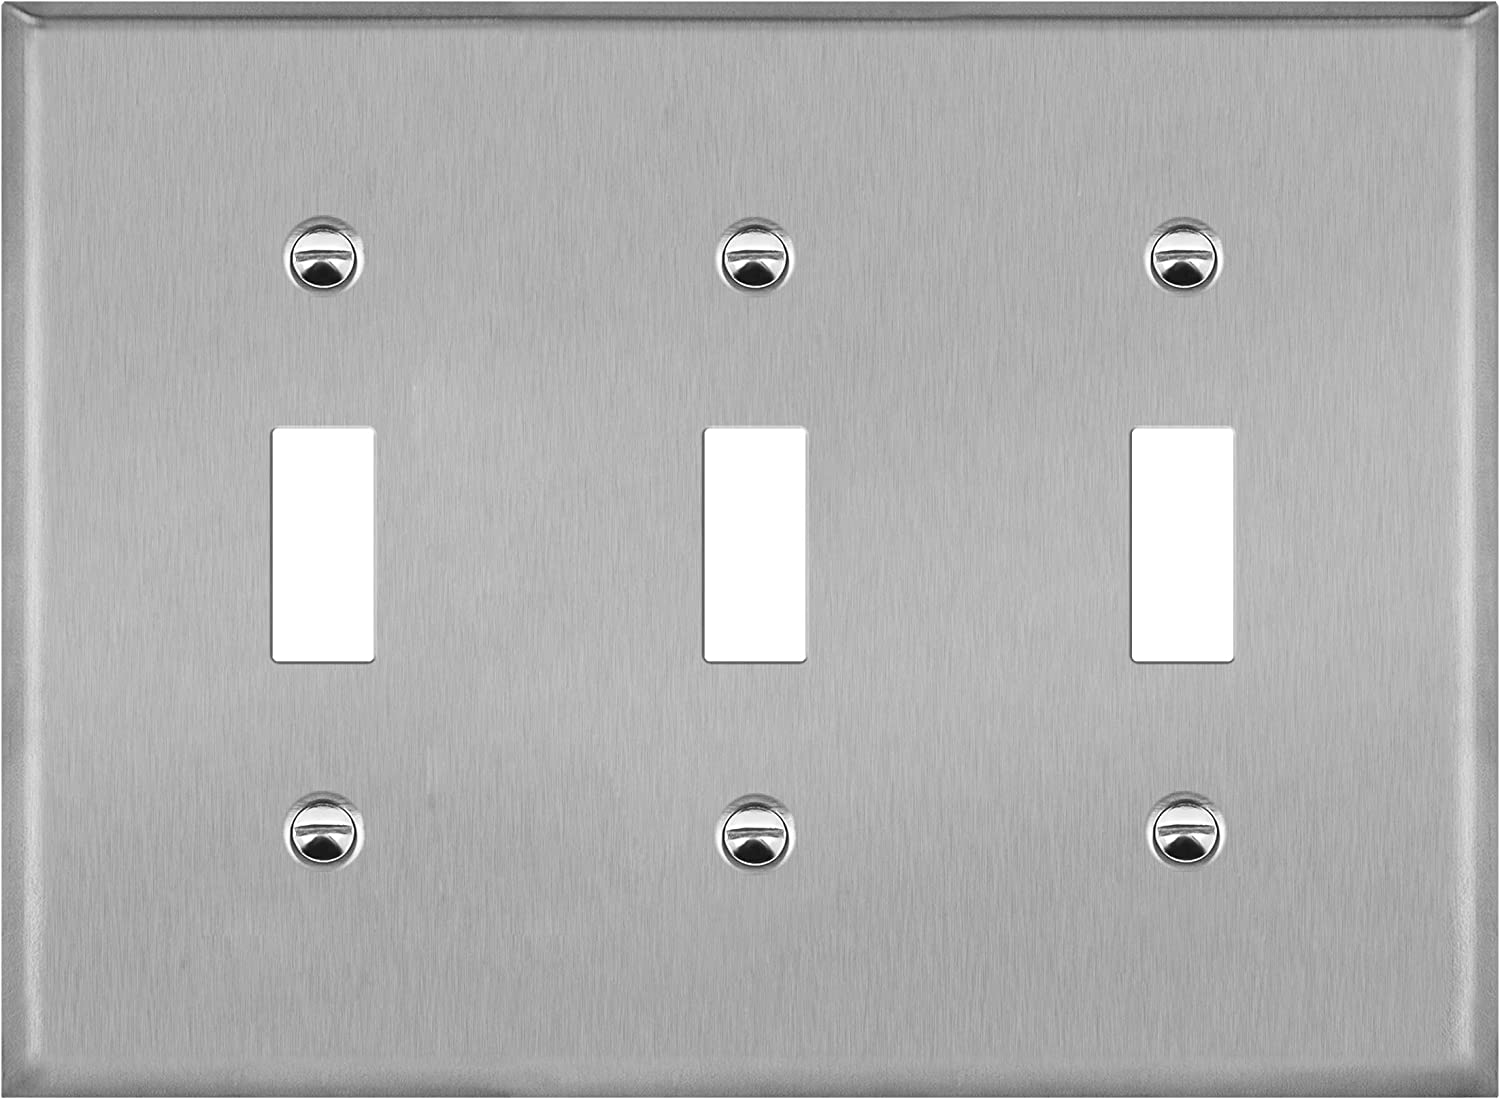 """ENERLITES Toggle Light Switch Stainless Steel Wall Plate, Metal Corrosive Resistant Cover for Rotary Dimmers and Lights Switches, 3-Gang 4.50"""" x 6.38"""", 7713, 430 Stainless Steel, UL Listed, Silver"""